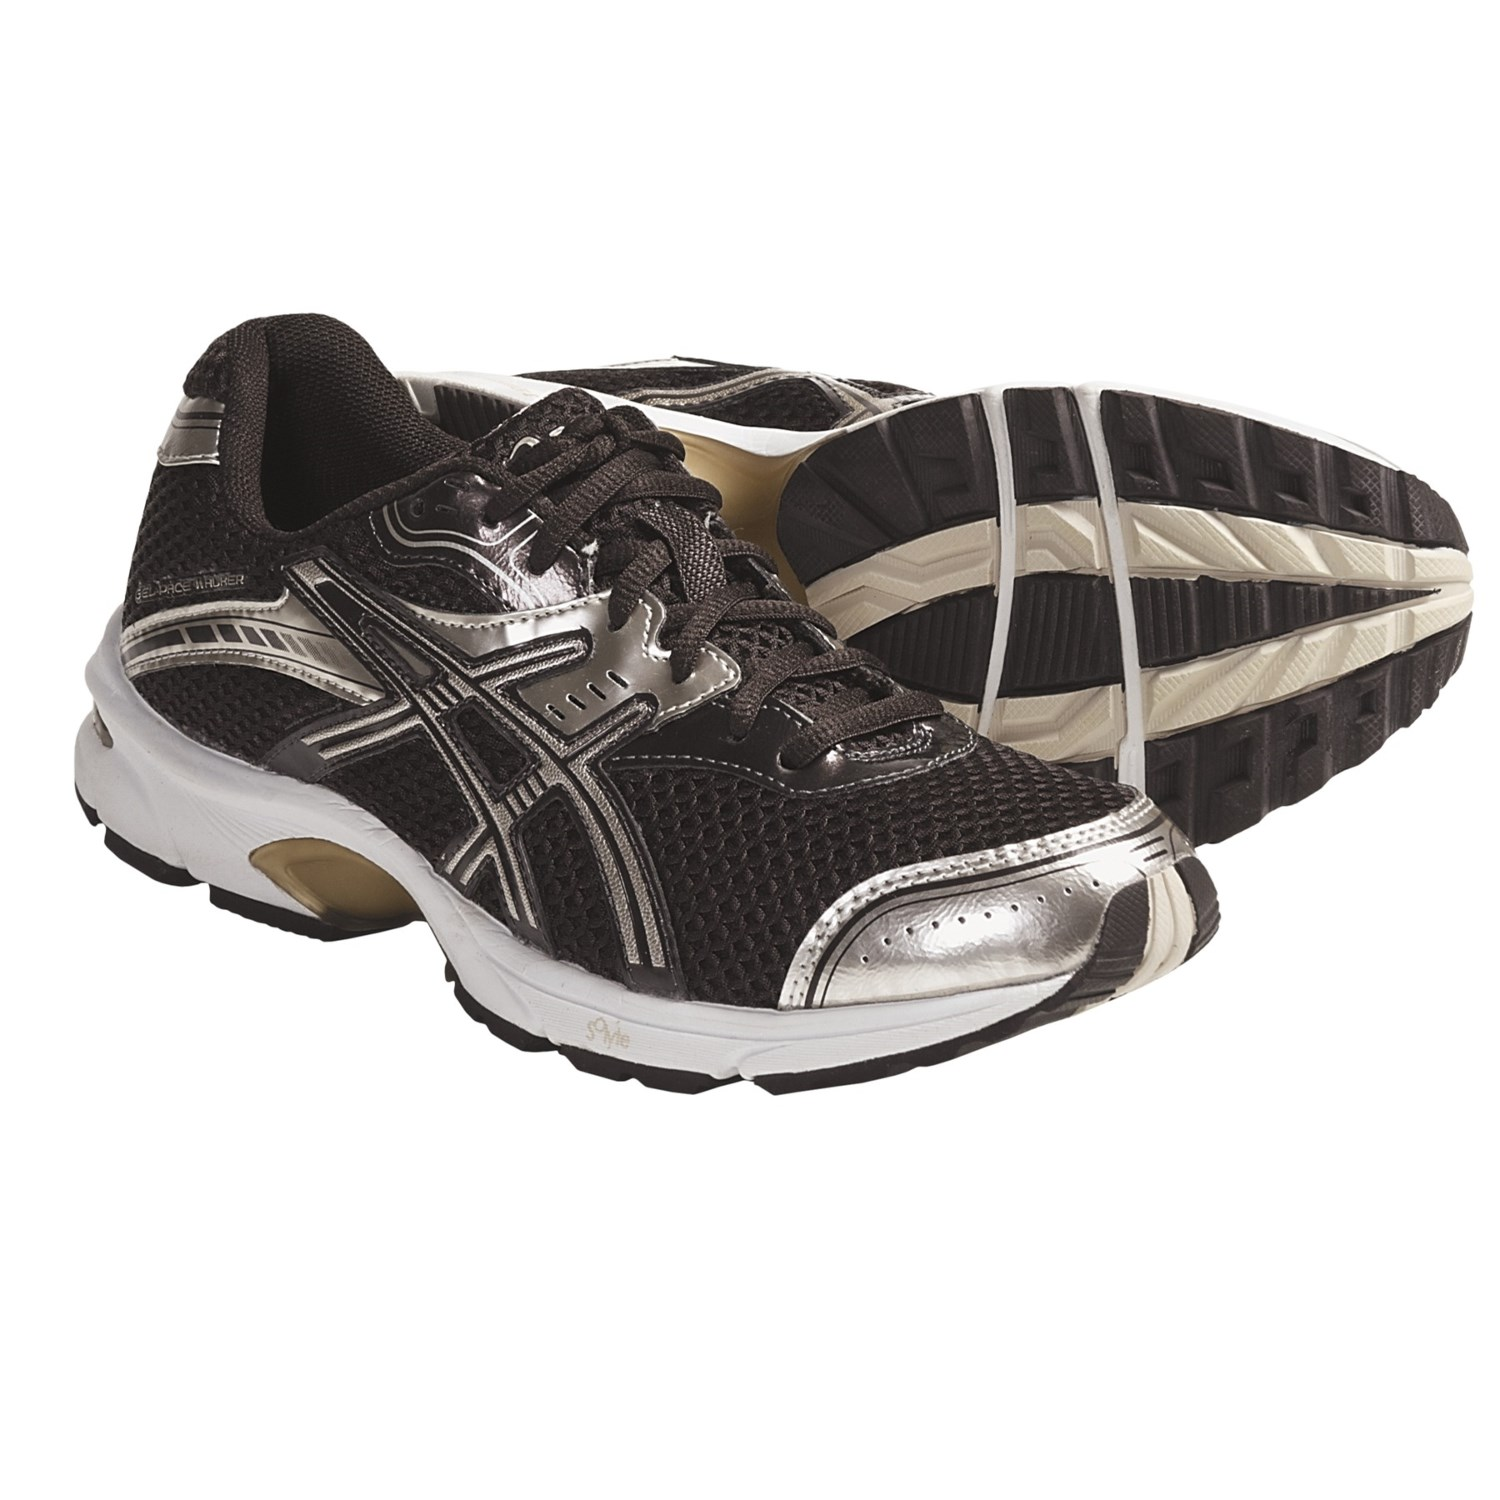 Asics GEL-Pace Walker Walking Shoes (For Women) in Chocolate/Champagne